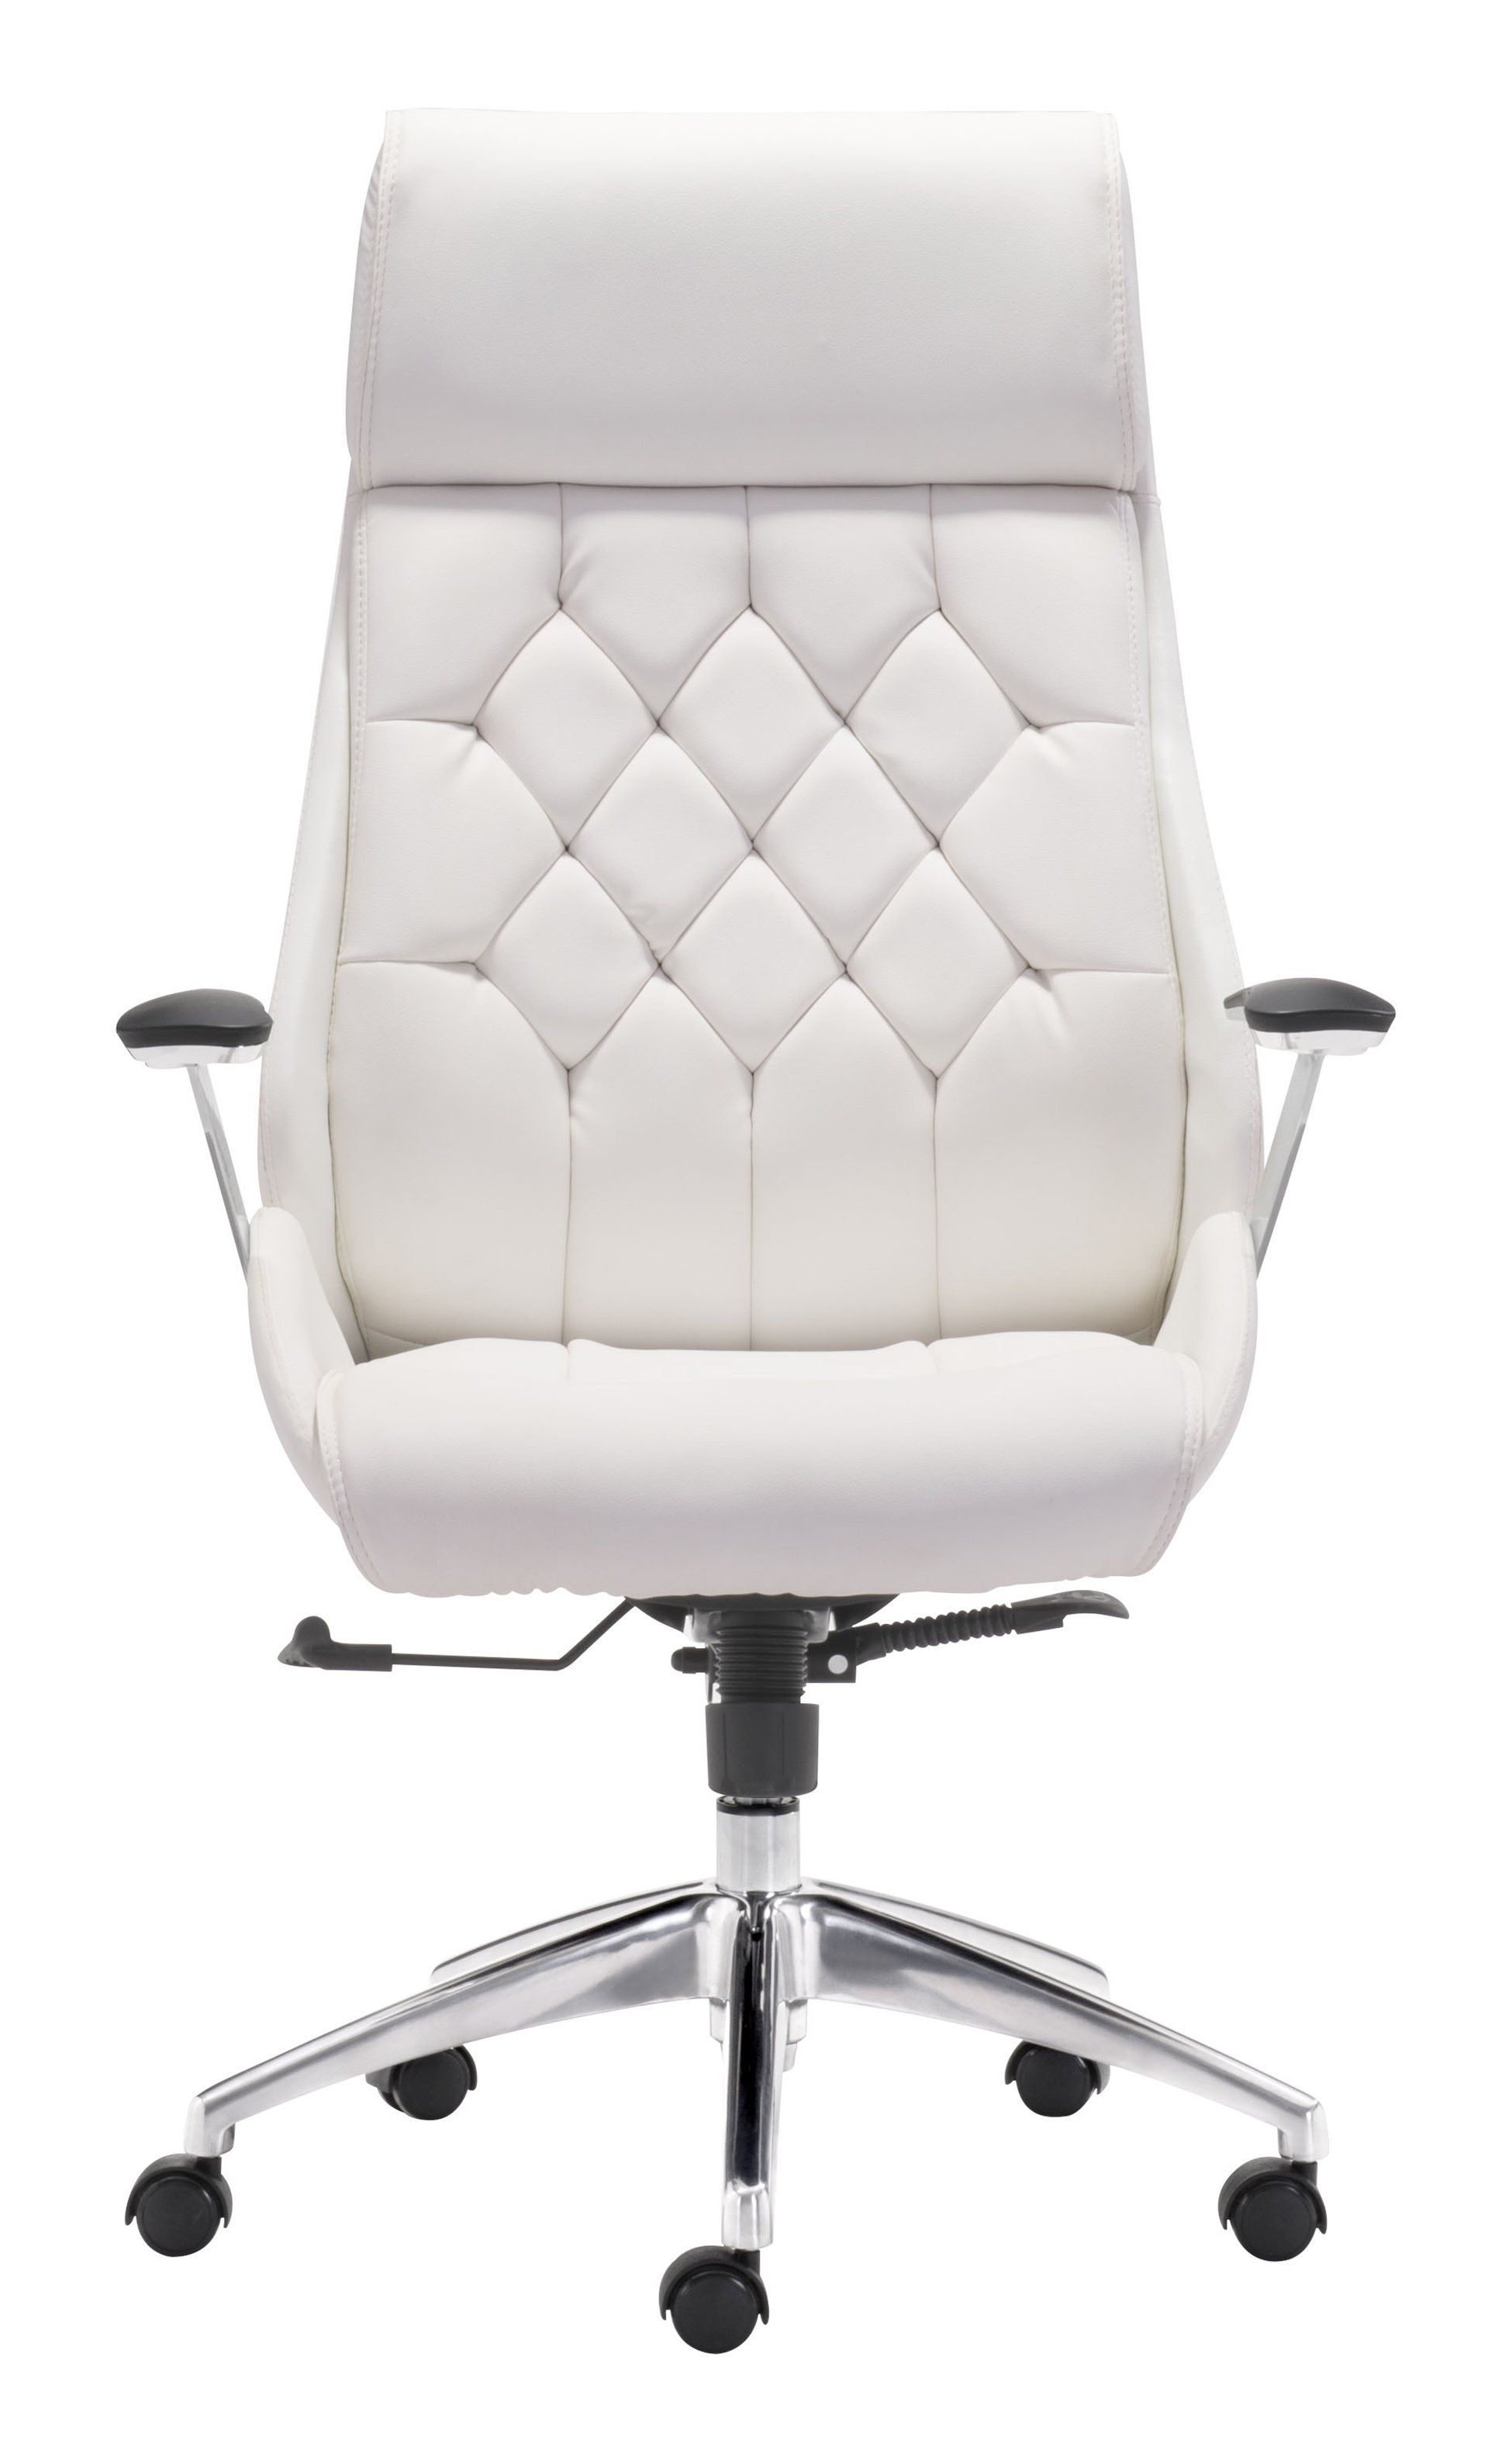 Boutique Office Chair Adjustable office chair, Office